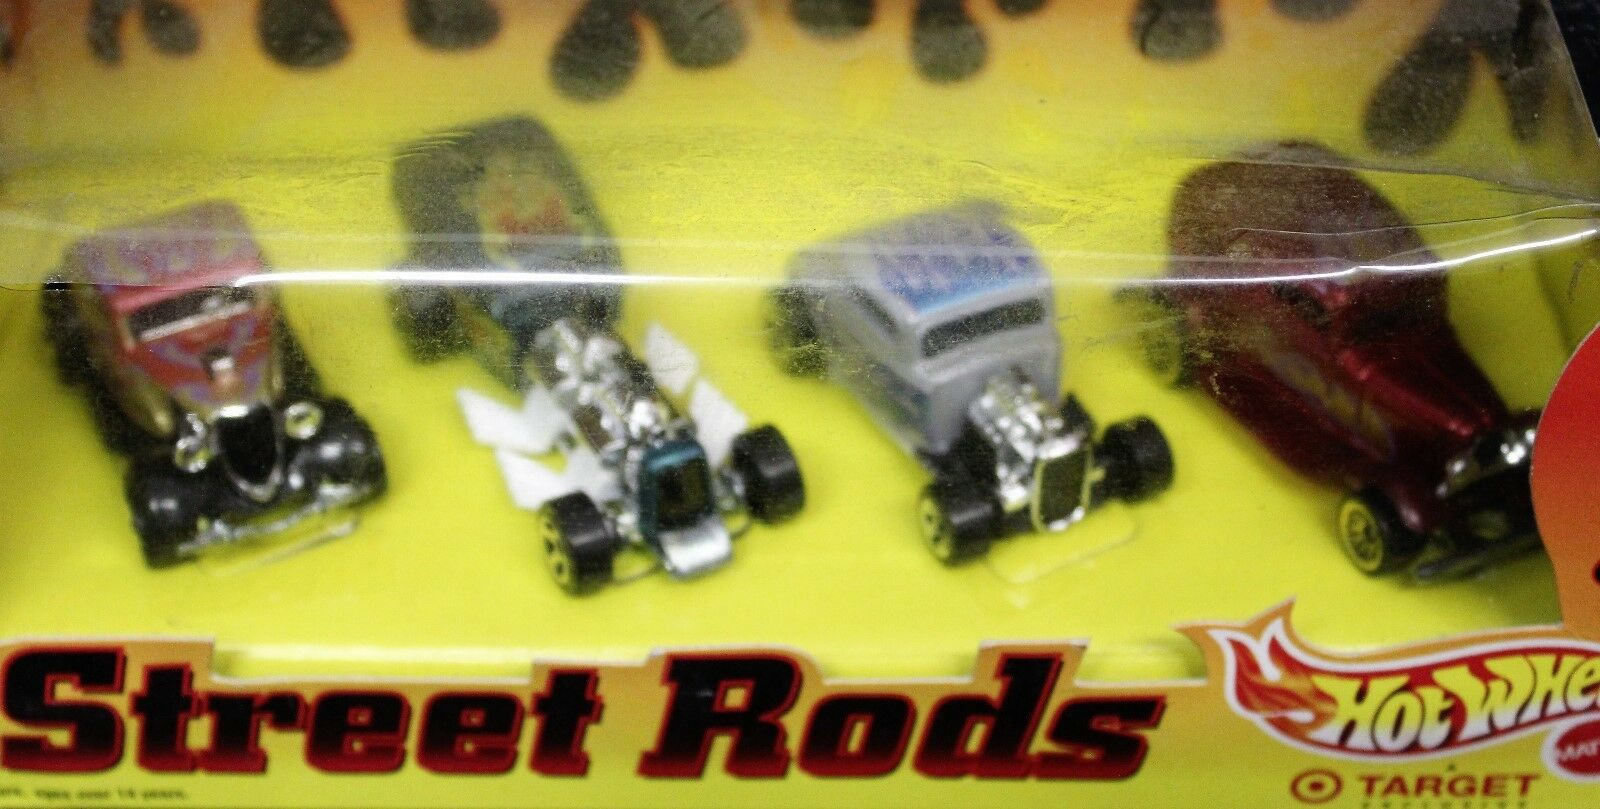 Toy Guitar Target 1998 Hot Wheels Street Rods 4 Car Set Target Plus 7 Ford 32s